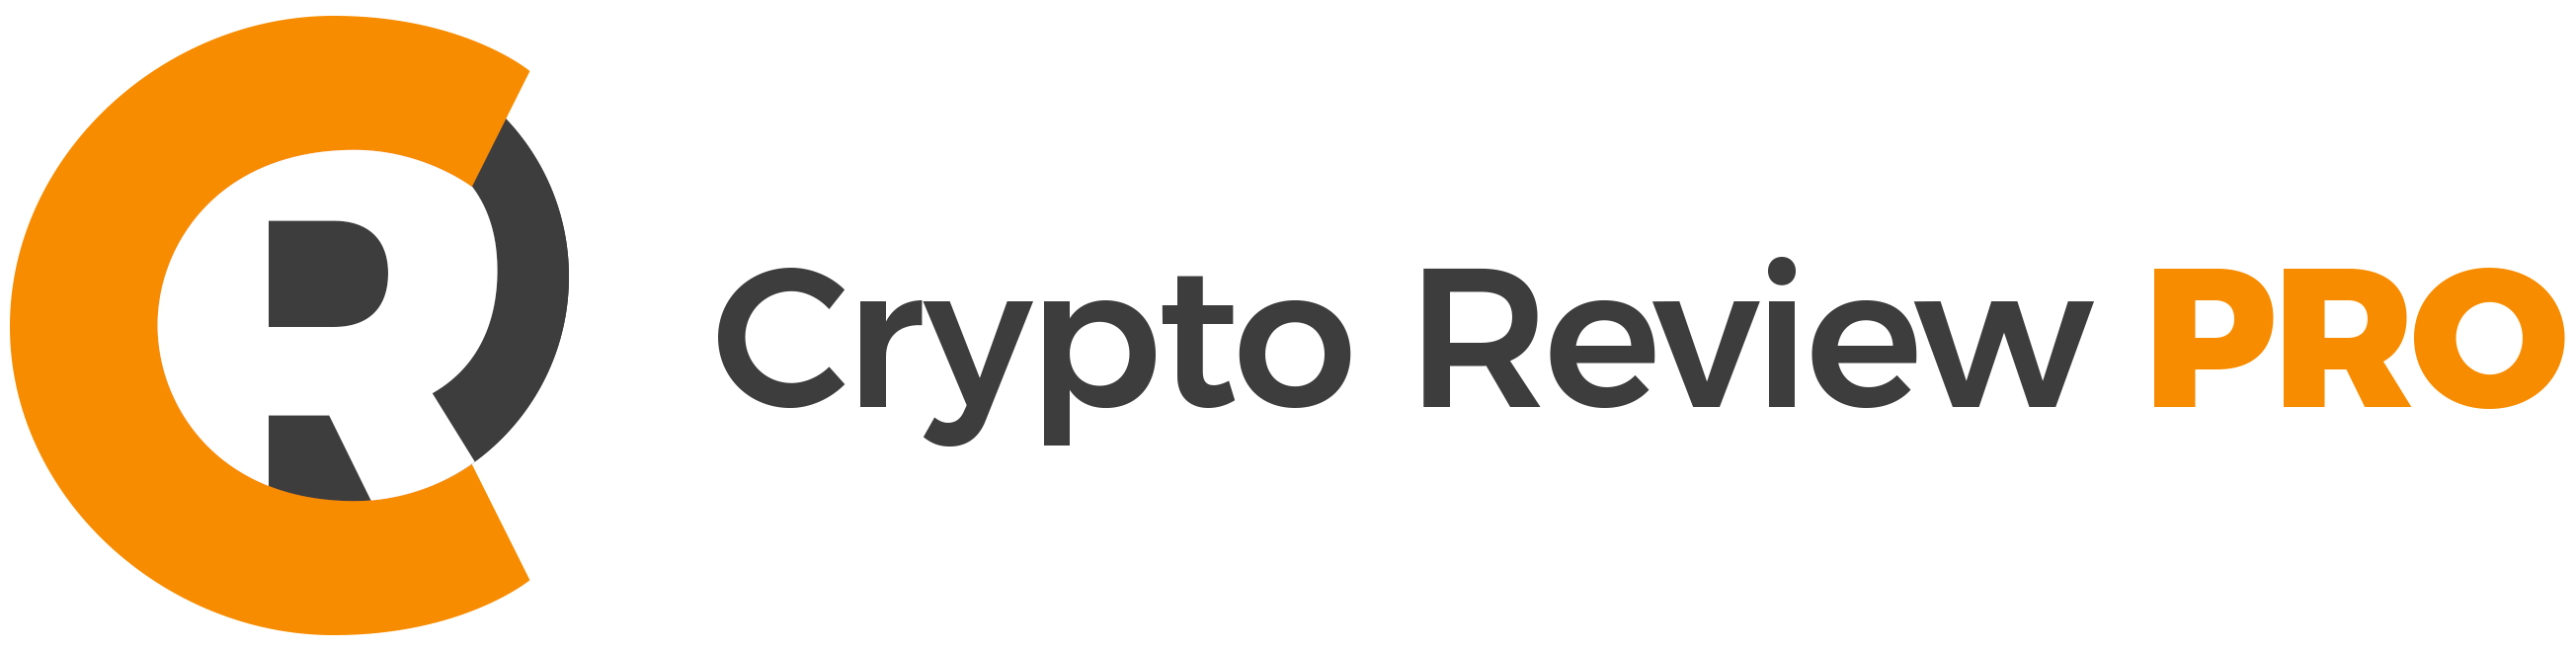 Crypto Review Pro